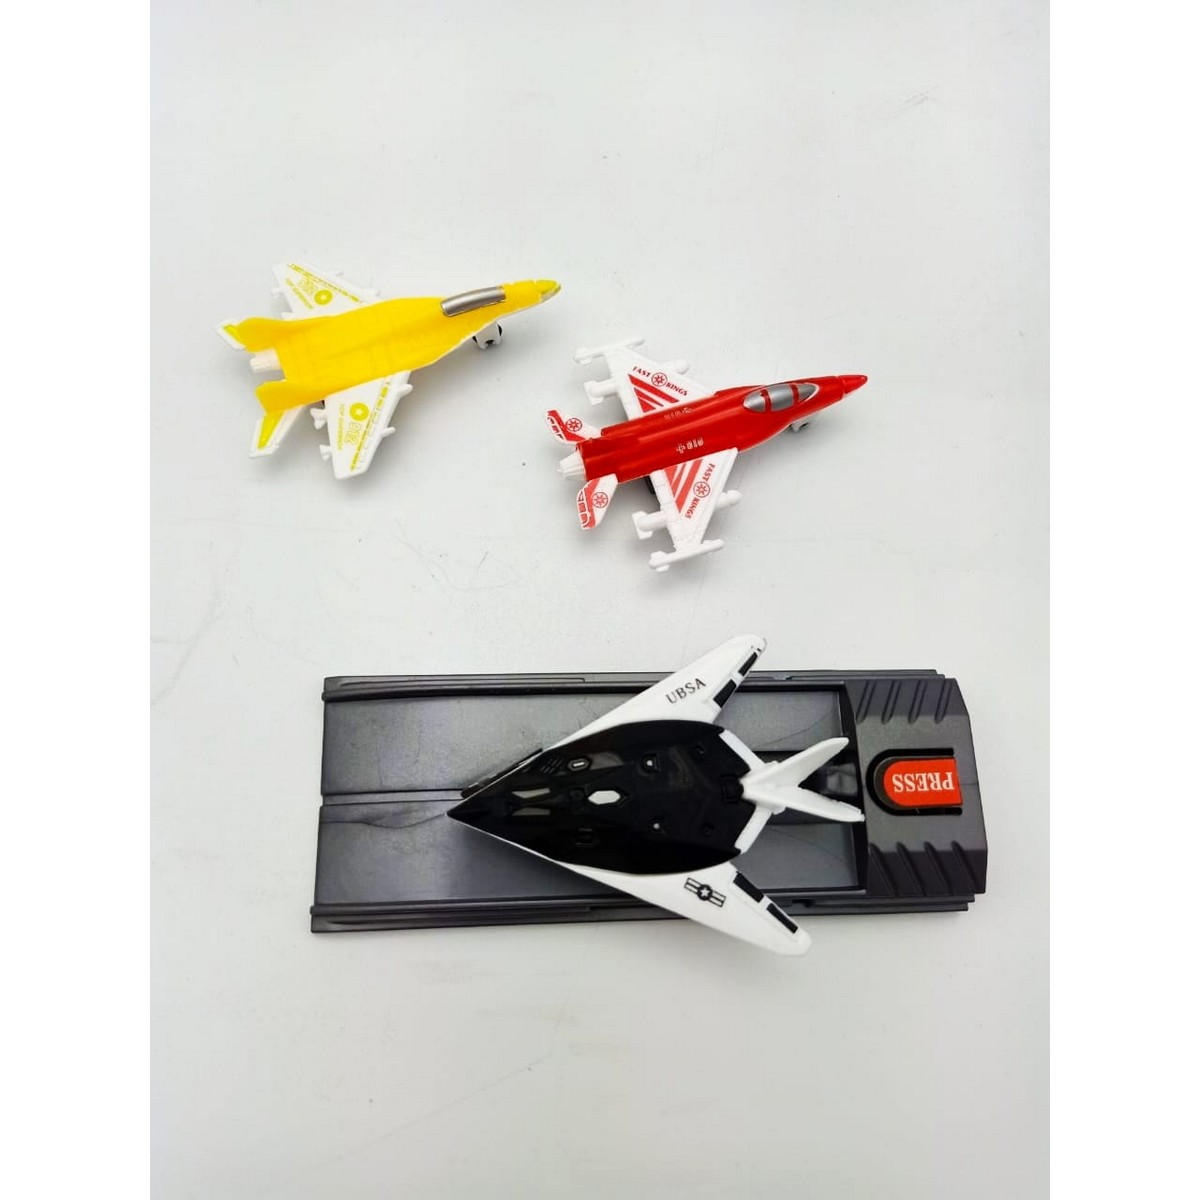 Battle plane and shooter toy for kids (boys and girls)